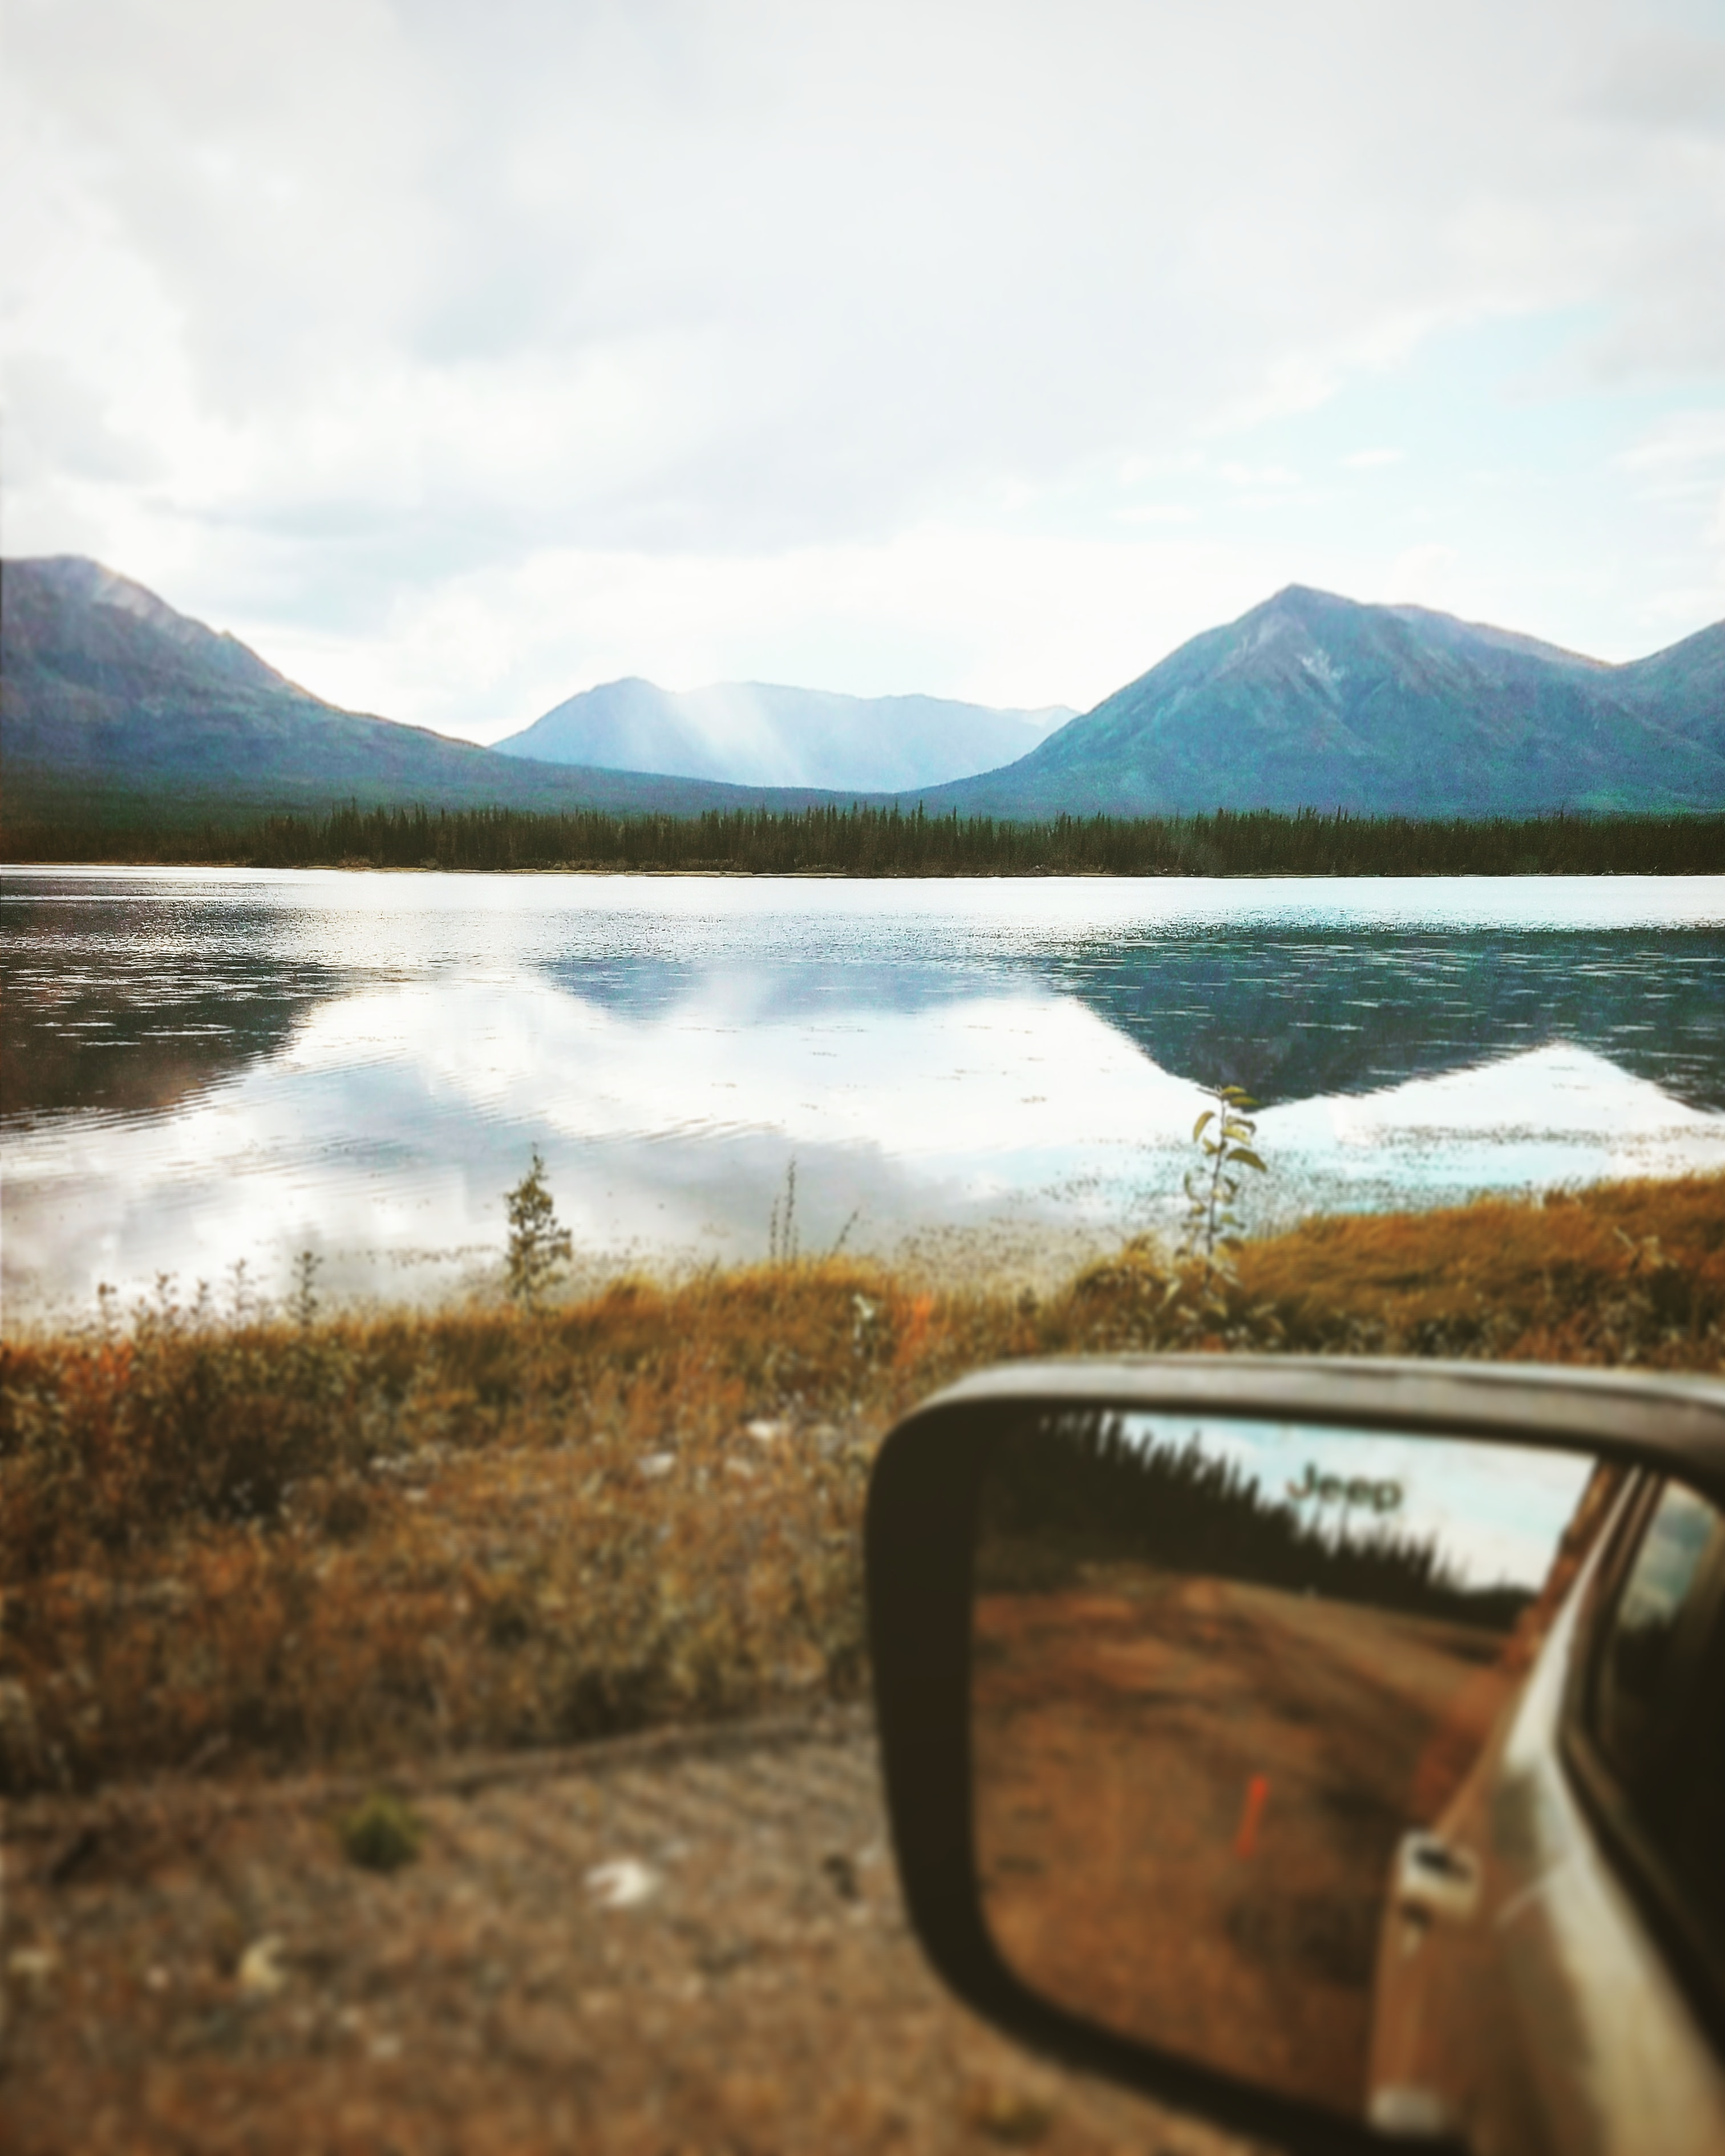 depth photography of car side mirror with a scene of body of water near mountains